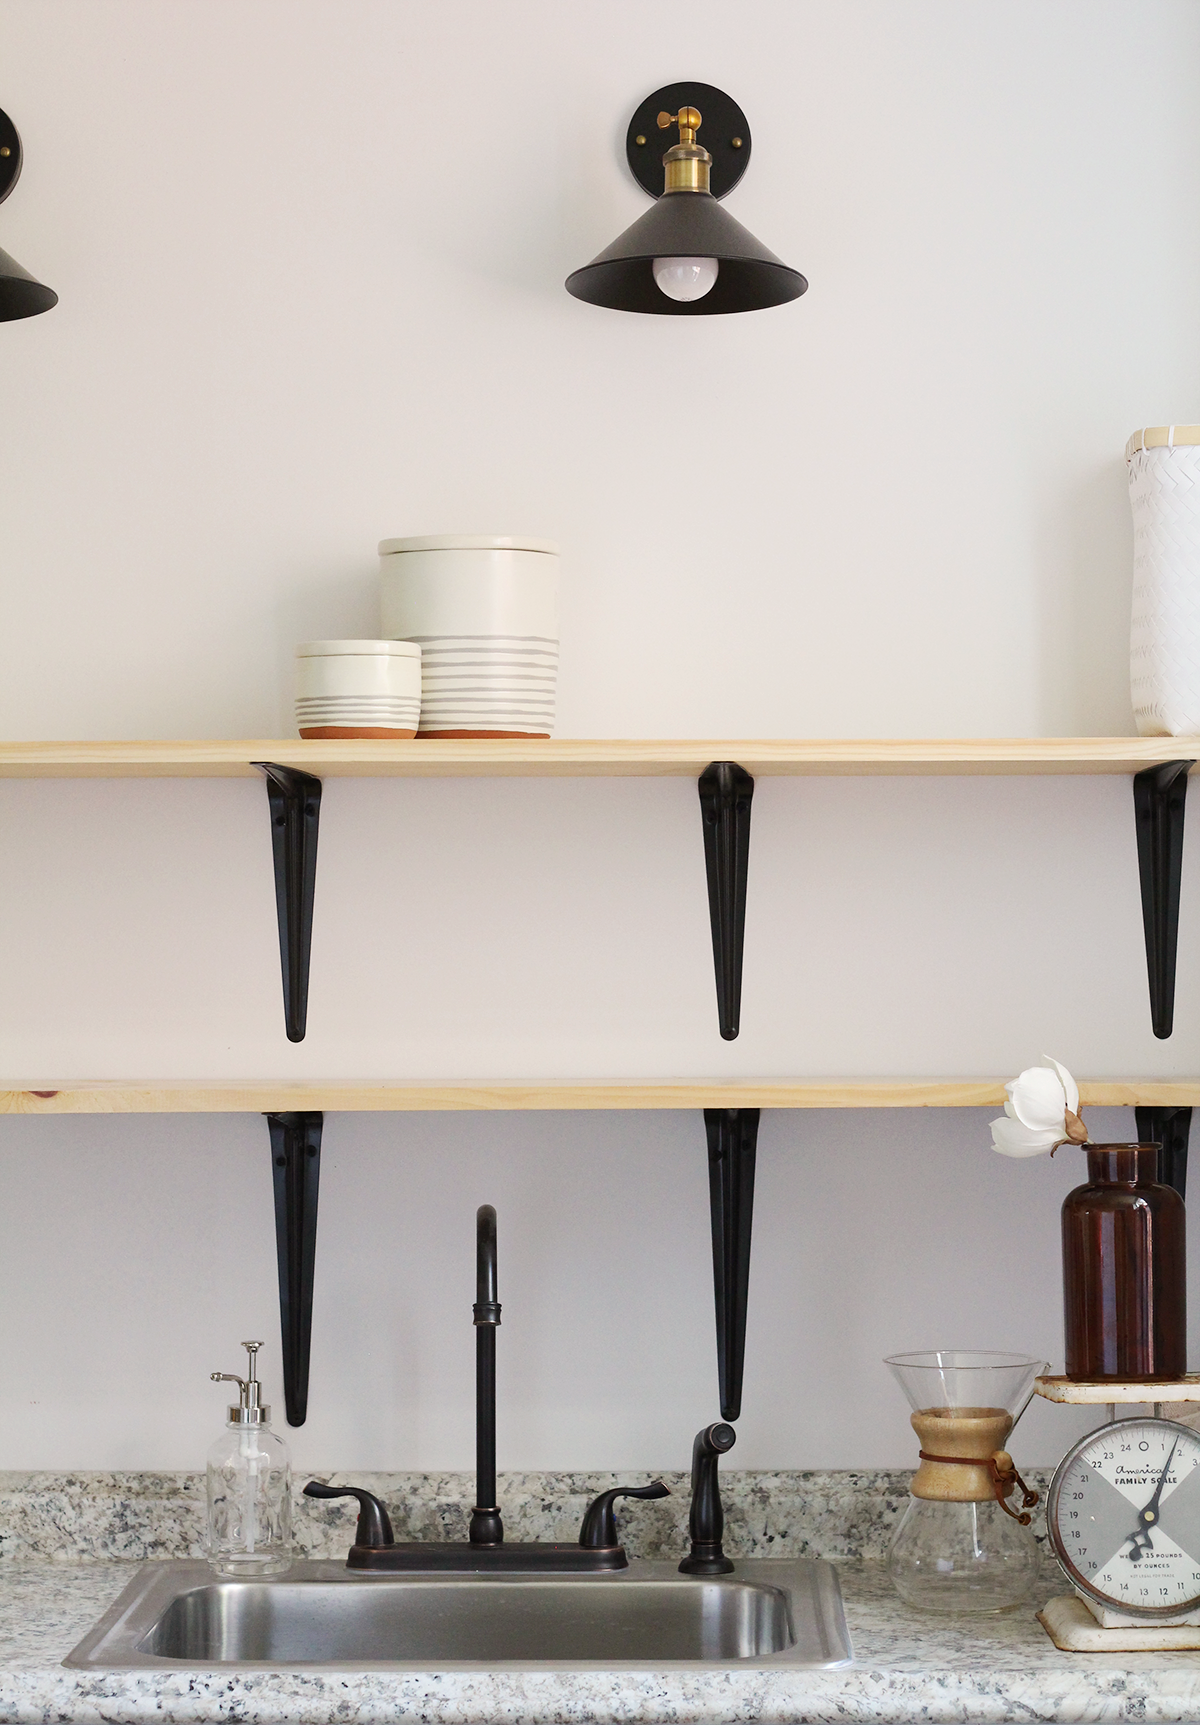 Learn how to decorate open kitchen shelves like a pro!